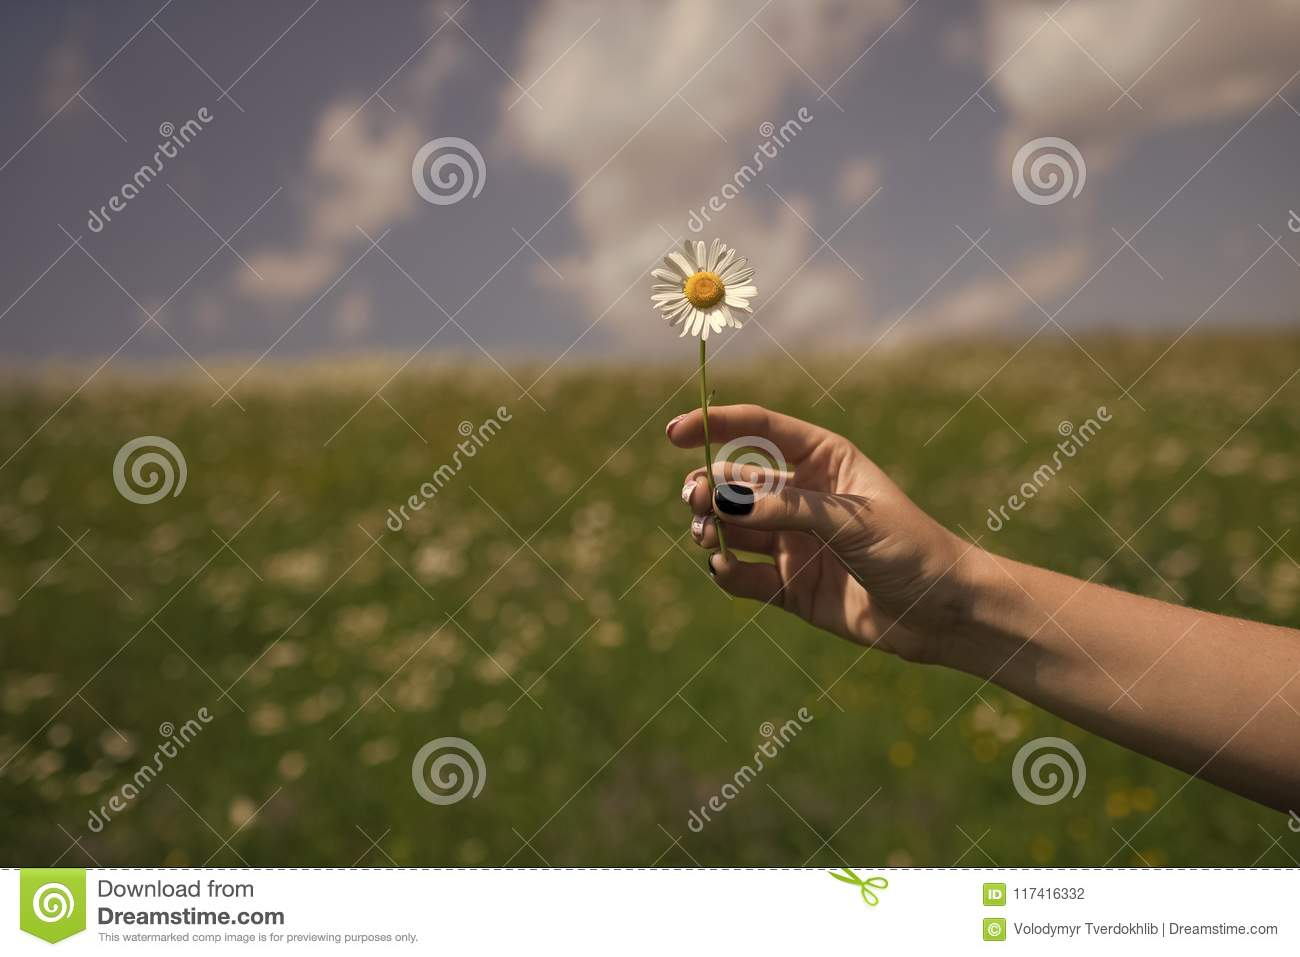 Womens day, mothers day, beauty. Summer, love, new life, skincare spa woman hold flower in blossoming field spring